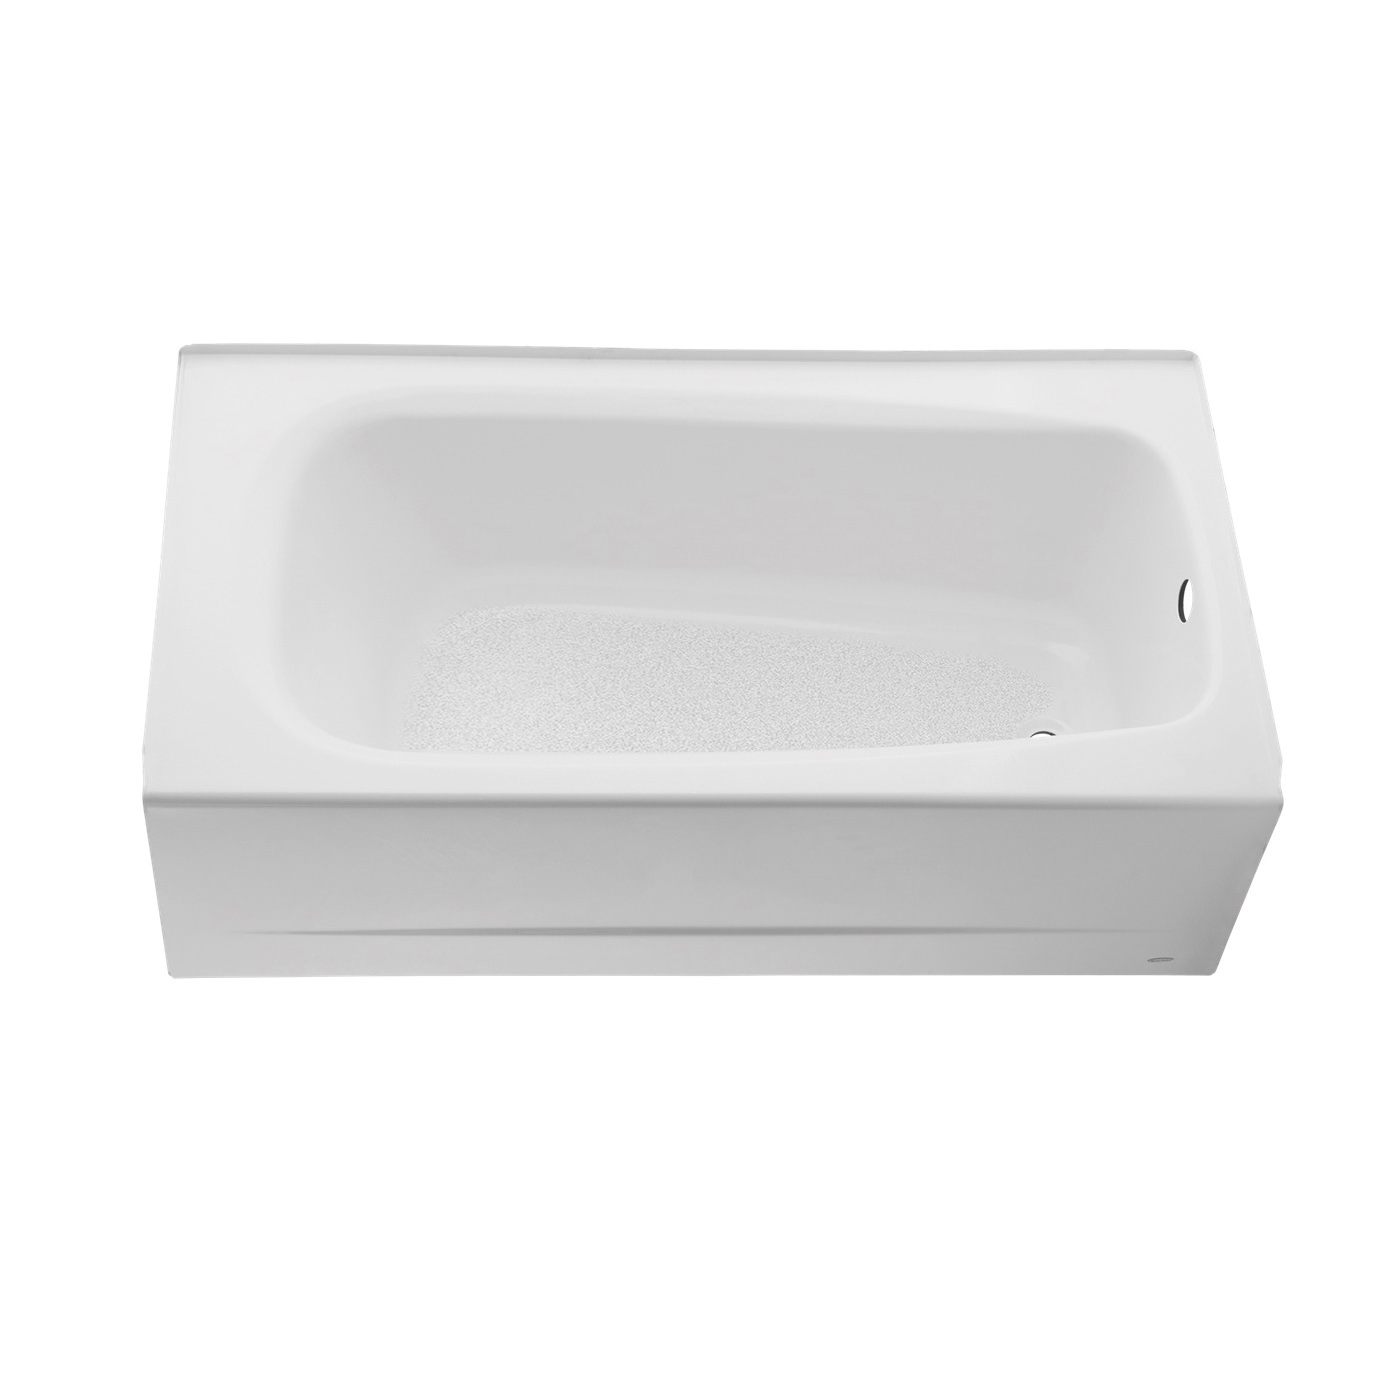 Consolidated Supply Co American Standard 2460002020 Cambridge Bathtub Soaking